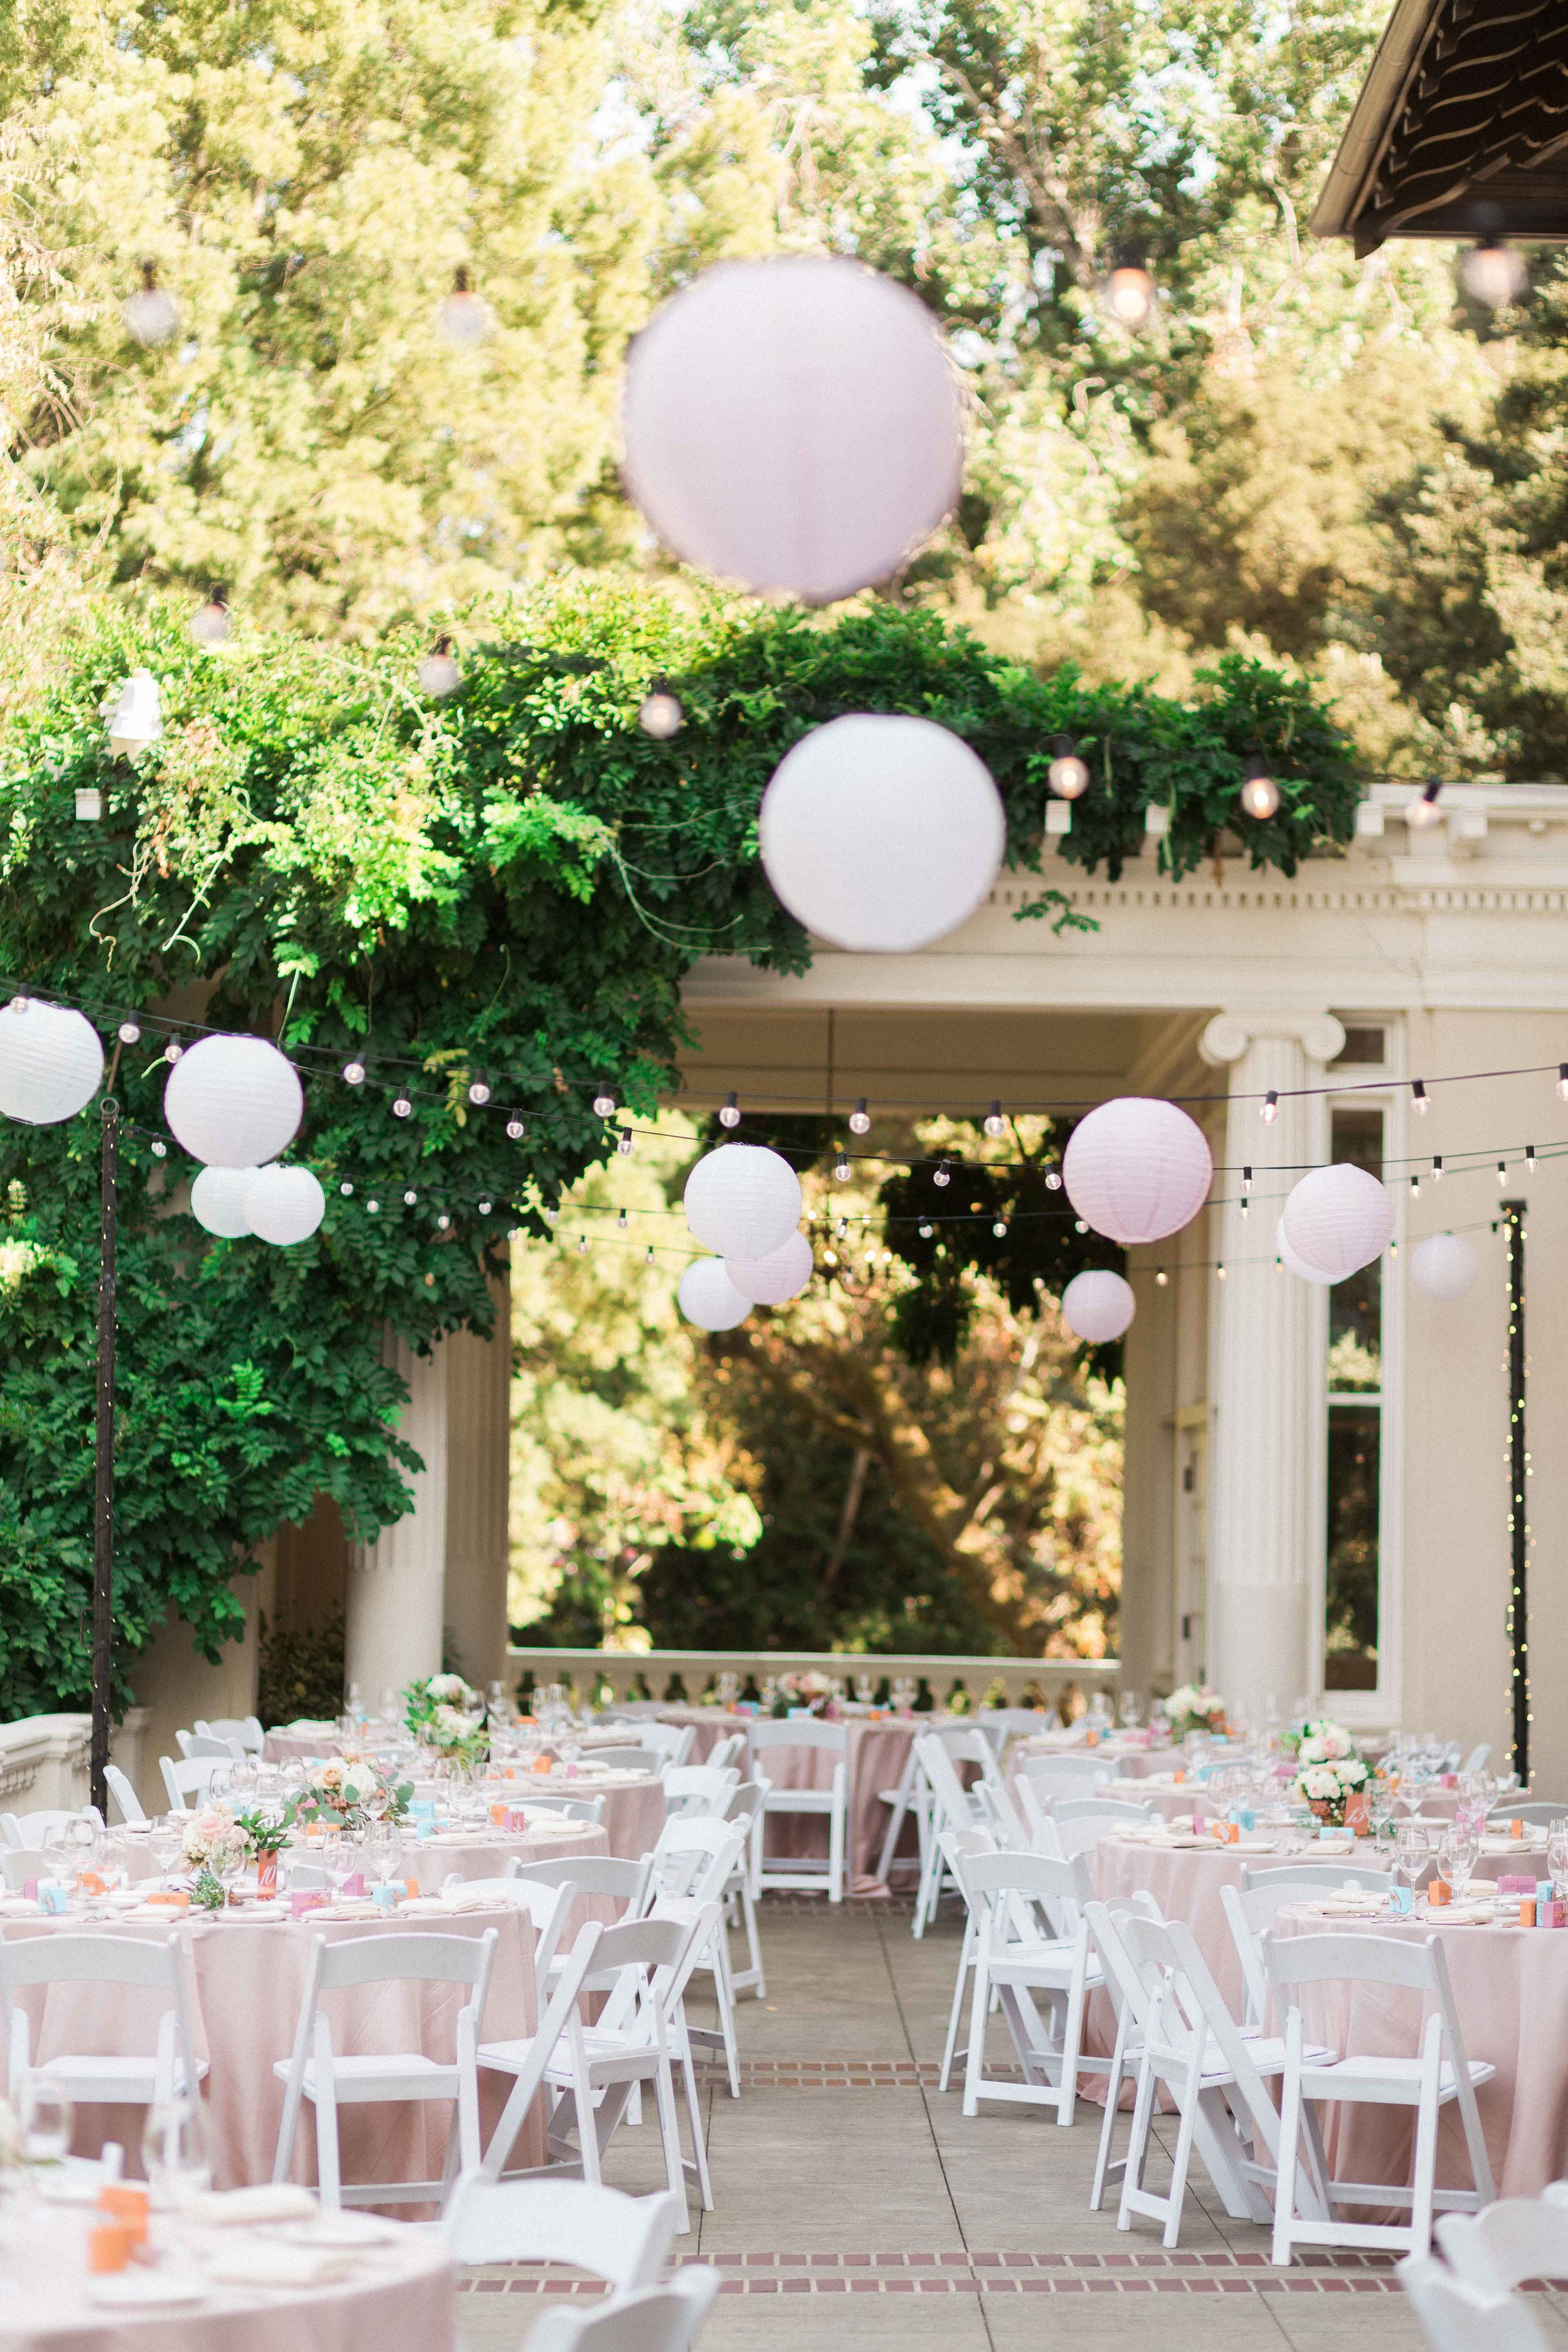 Villa_Montalvo_Wedding_Photographer_Videographer_San_Francisco151.jpg